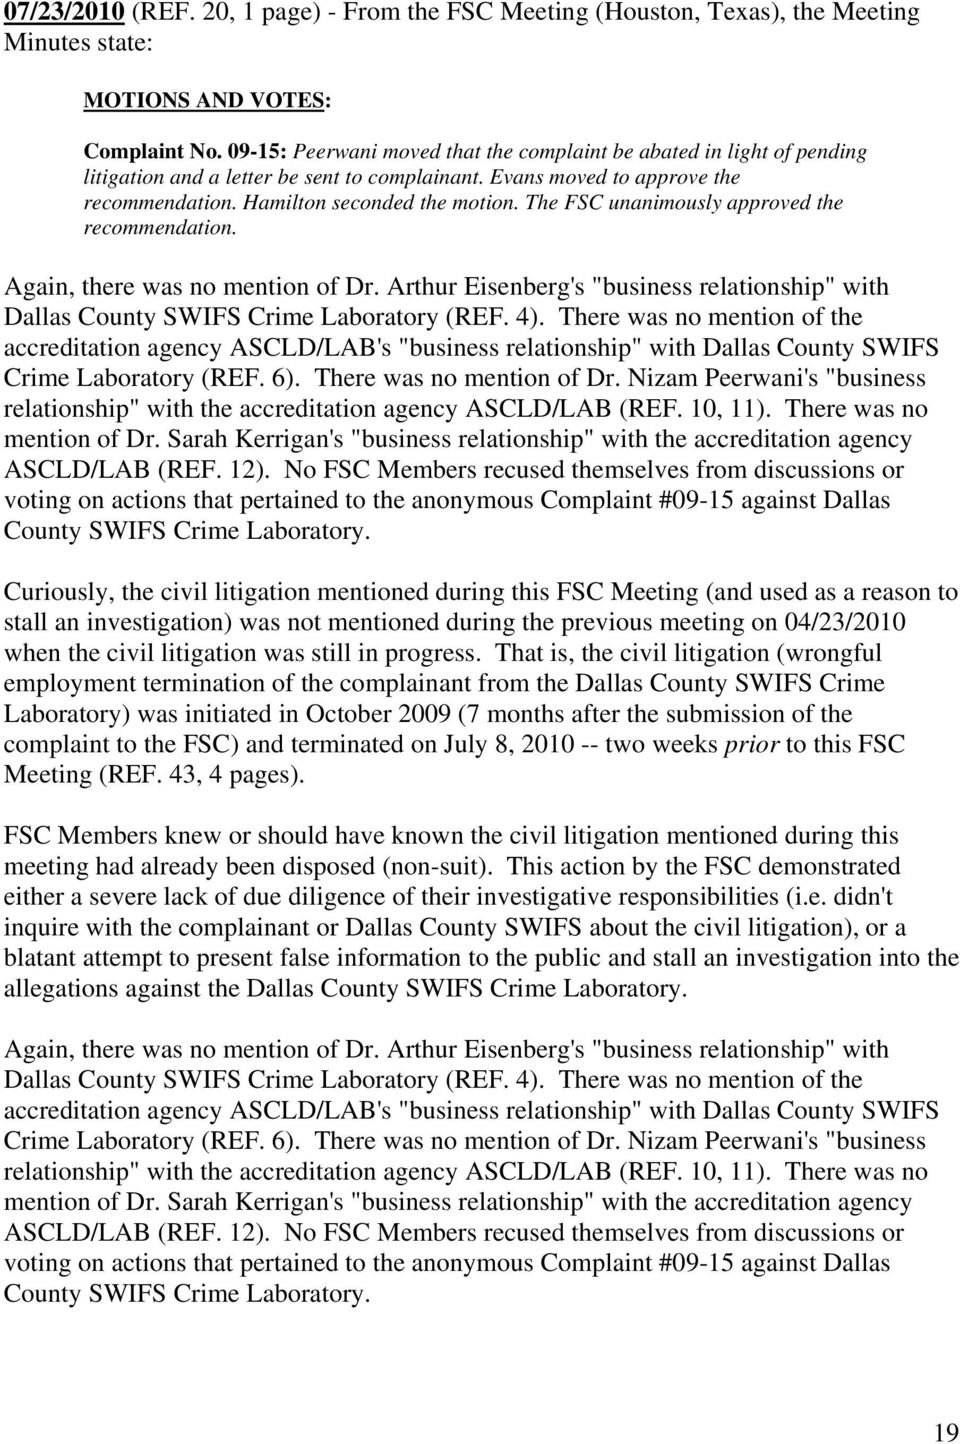 "The FSC unanimously approved the recommendation. Again, there was no mention of Dr. Arthur Eisenberg's ""business relationship"" with Dallas County SWIFS Crime Laboratory (REF. 4)."